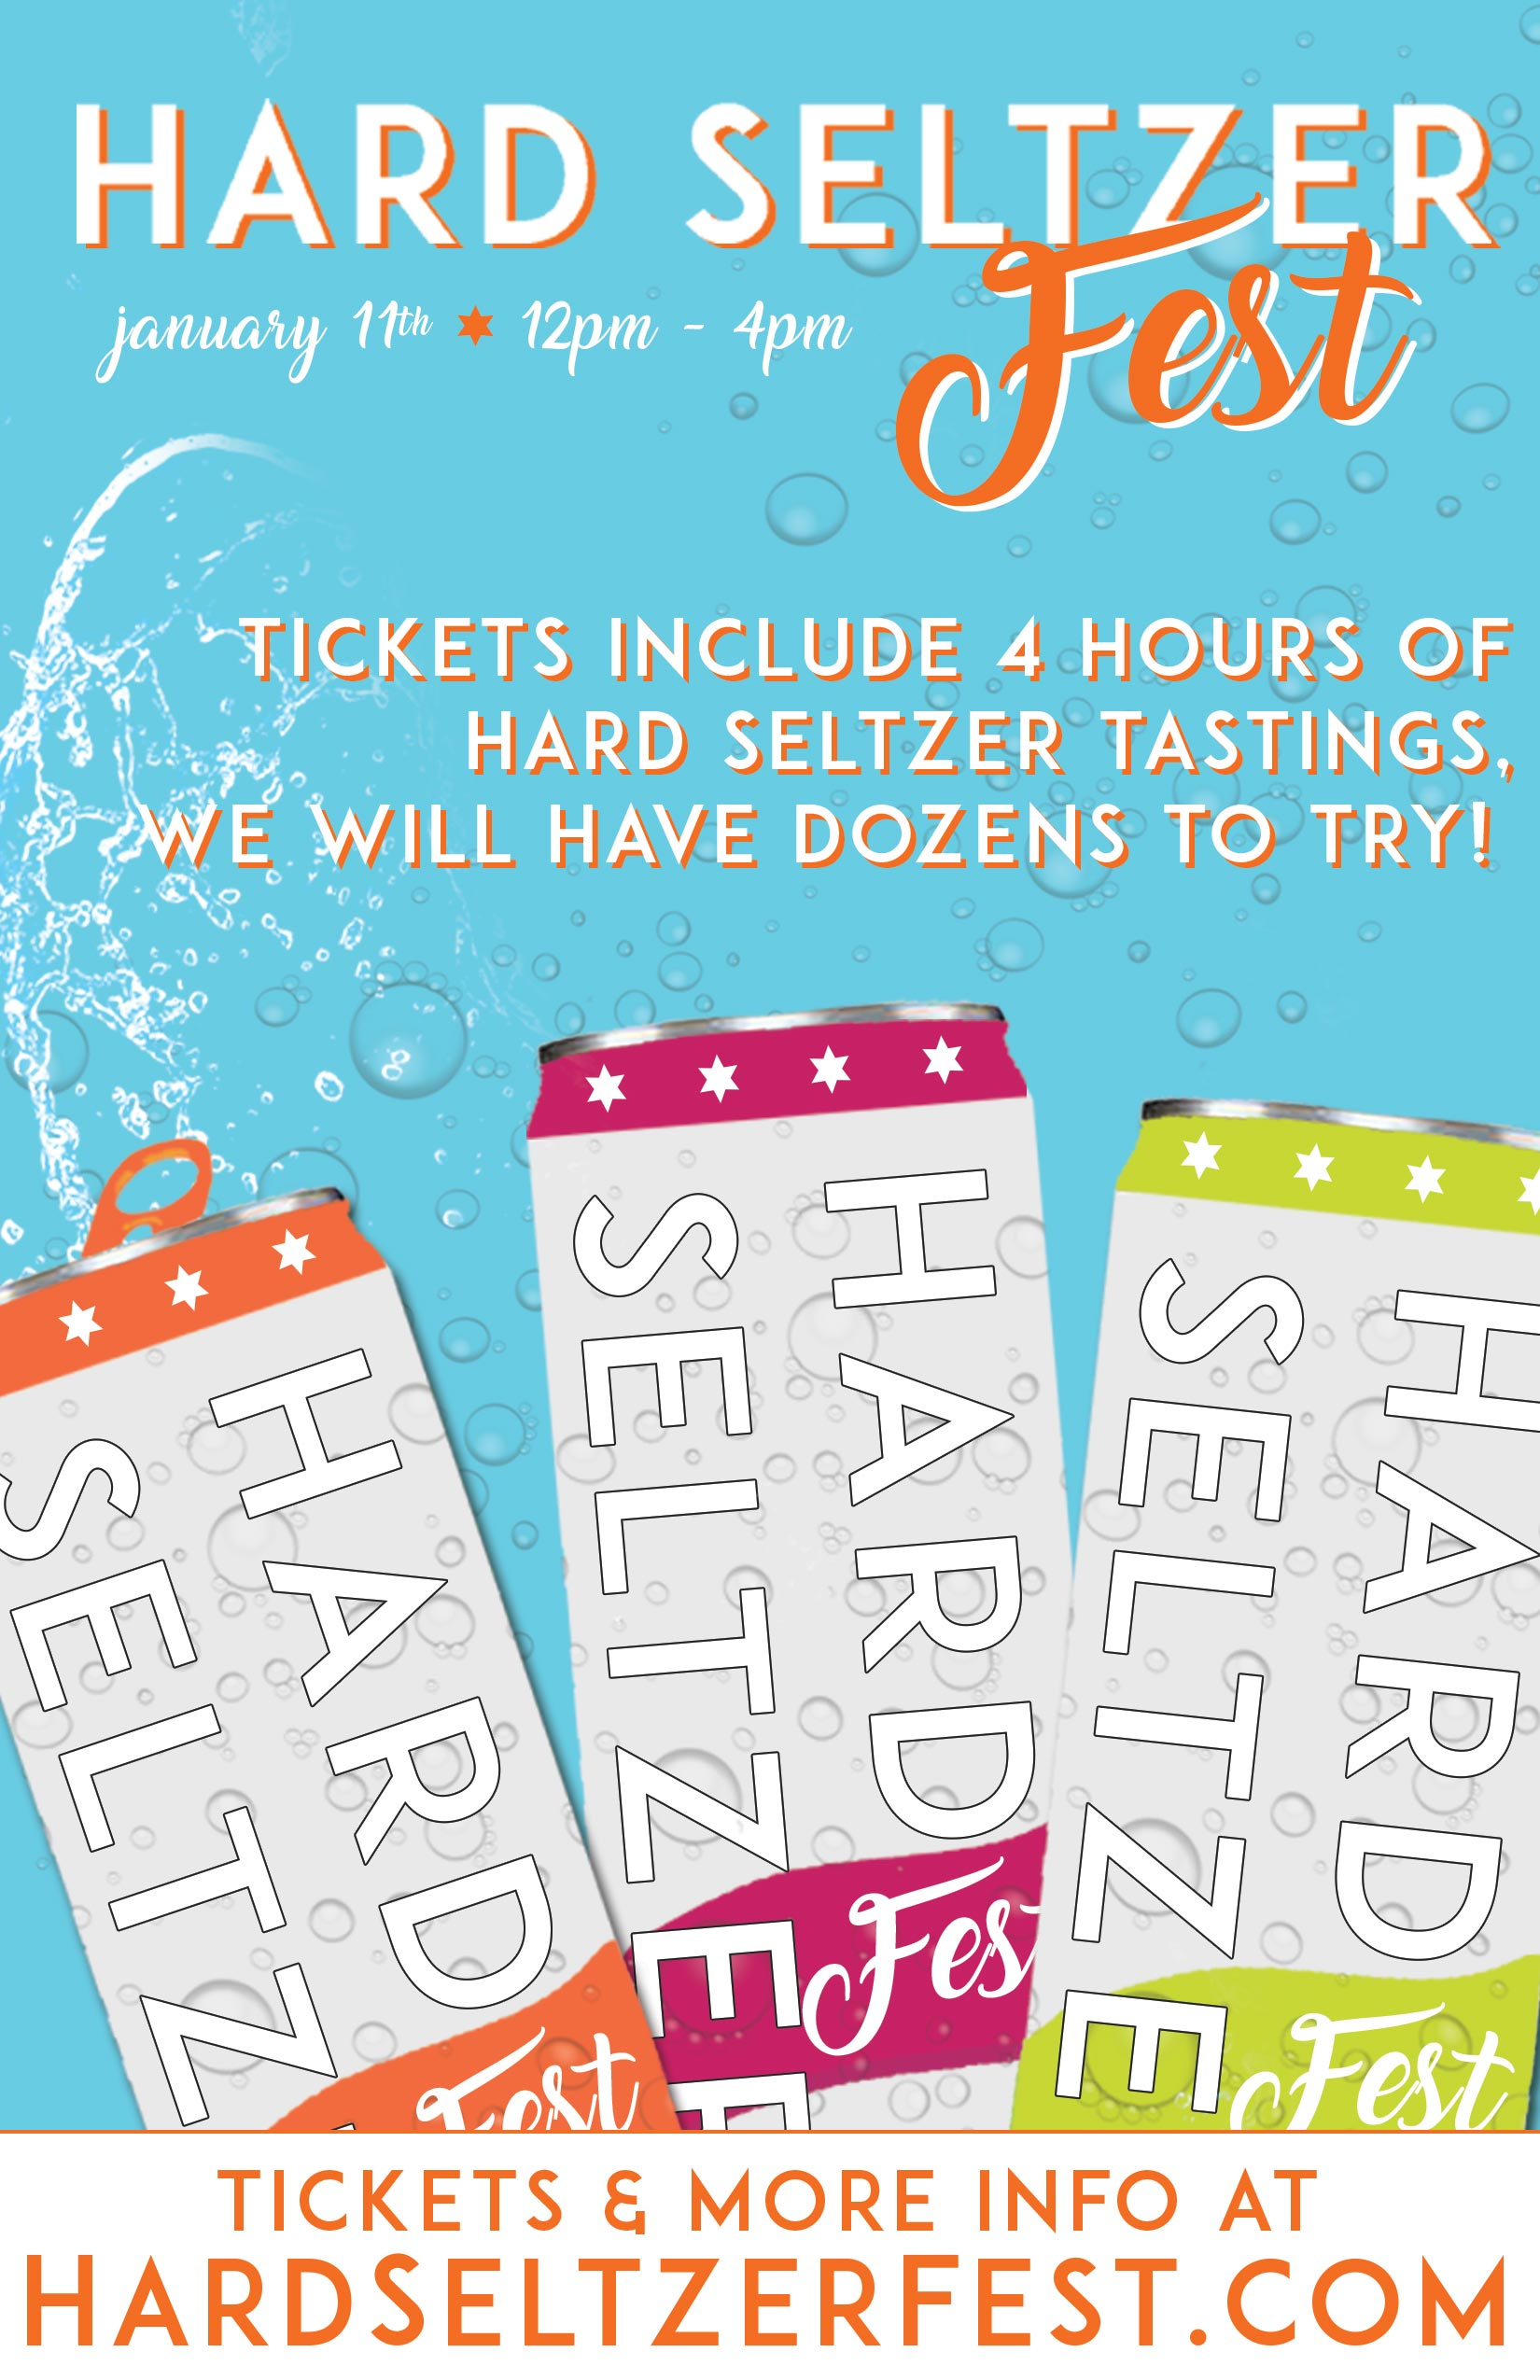 Hard Seltzer Fest Tasting Party - Tickets include dozens of different hard seltzers to sample. Buy NOW!